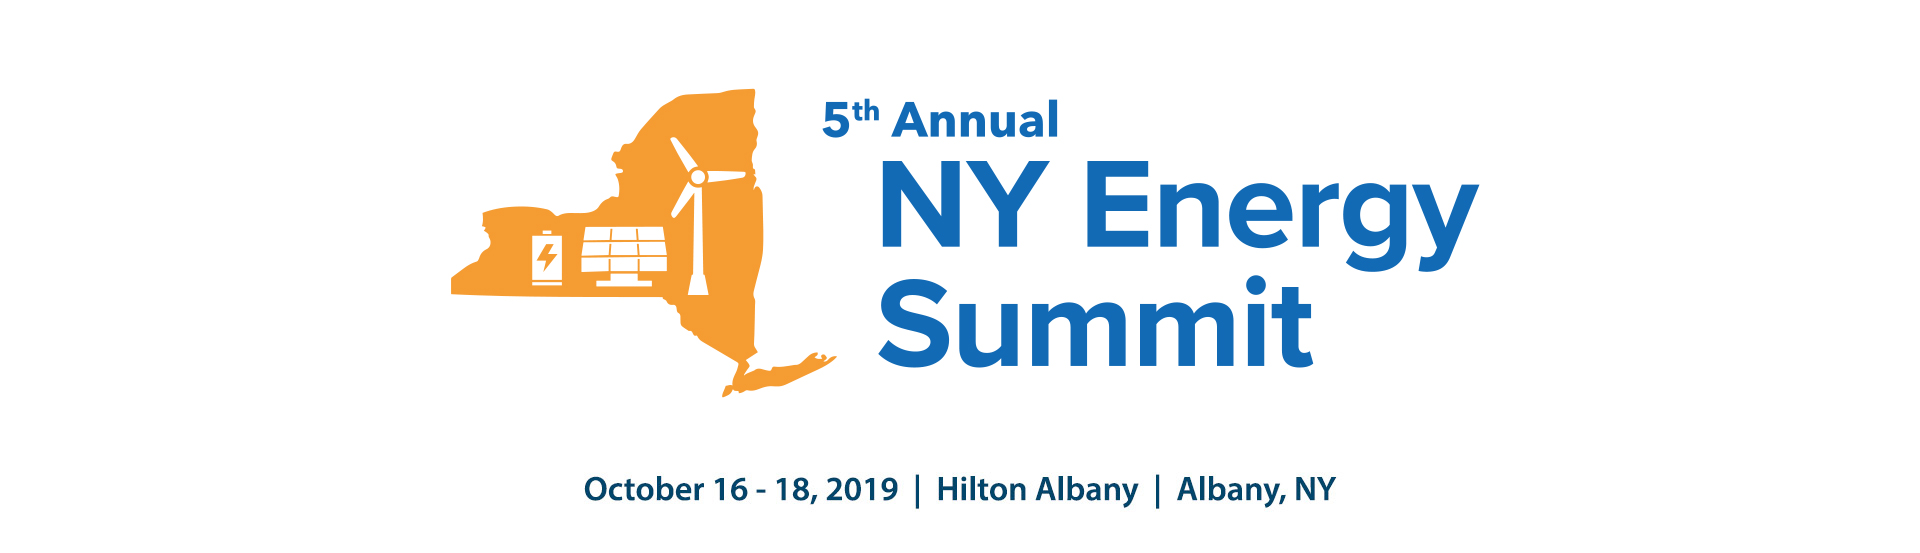 NY Energy Summit Logo